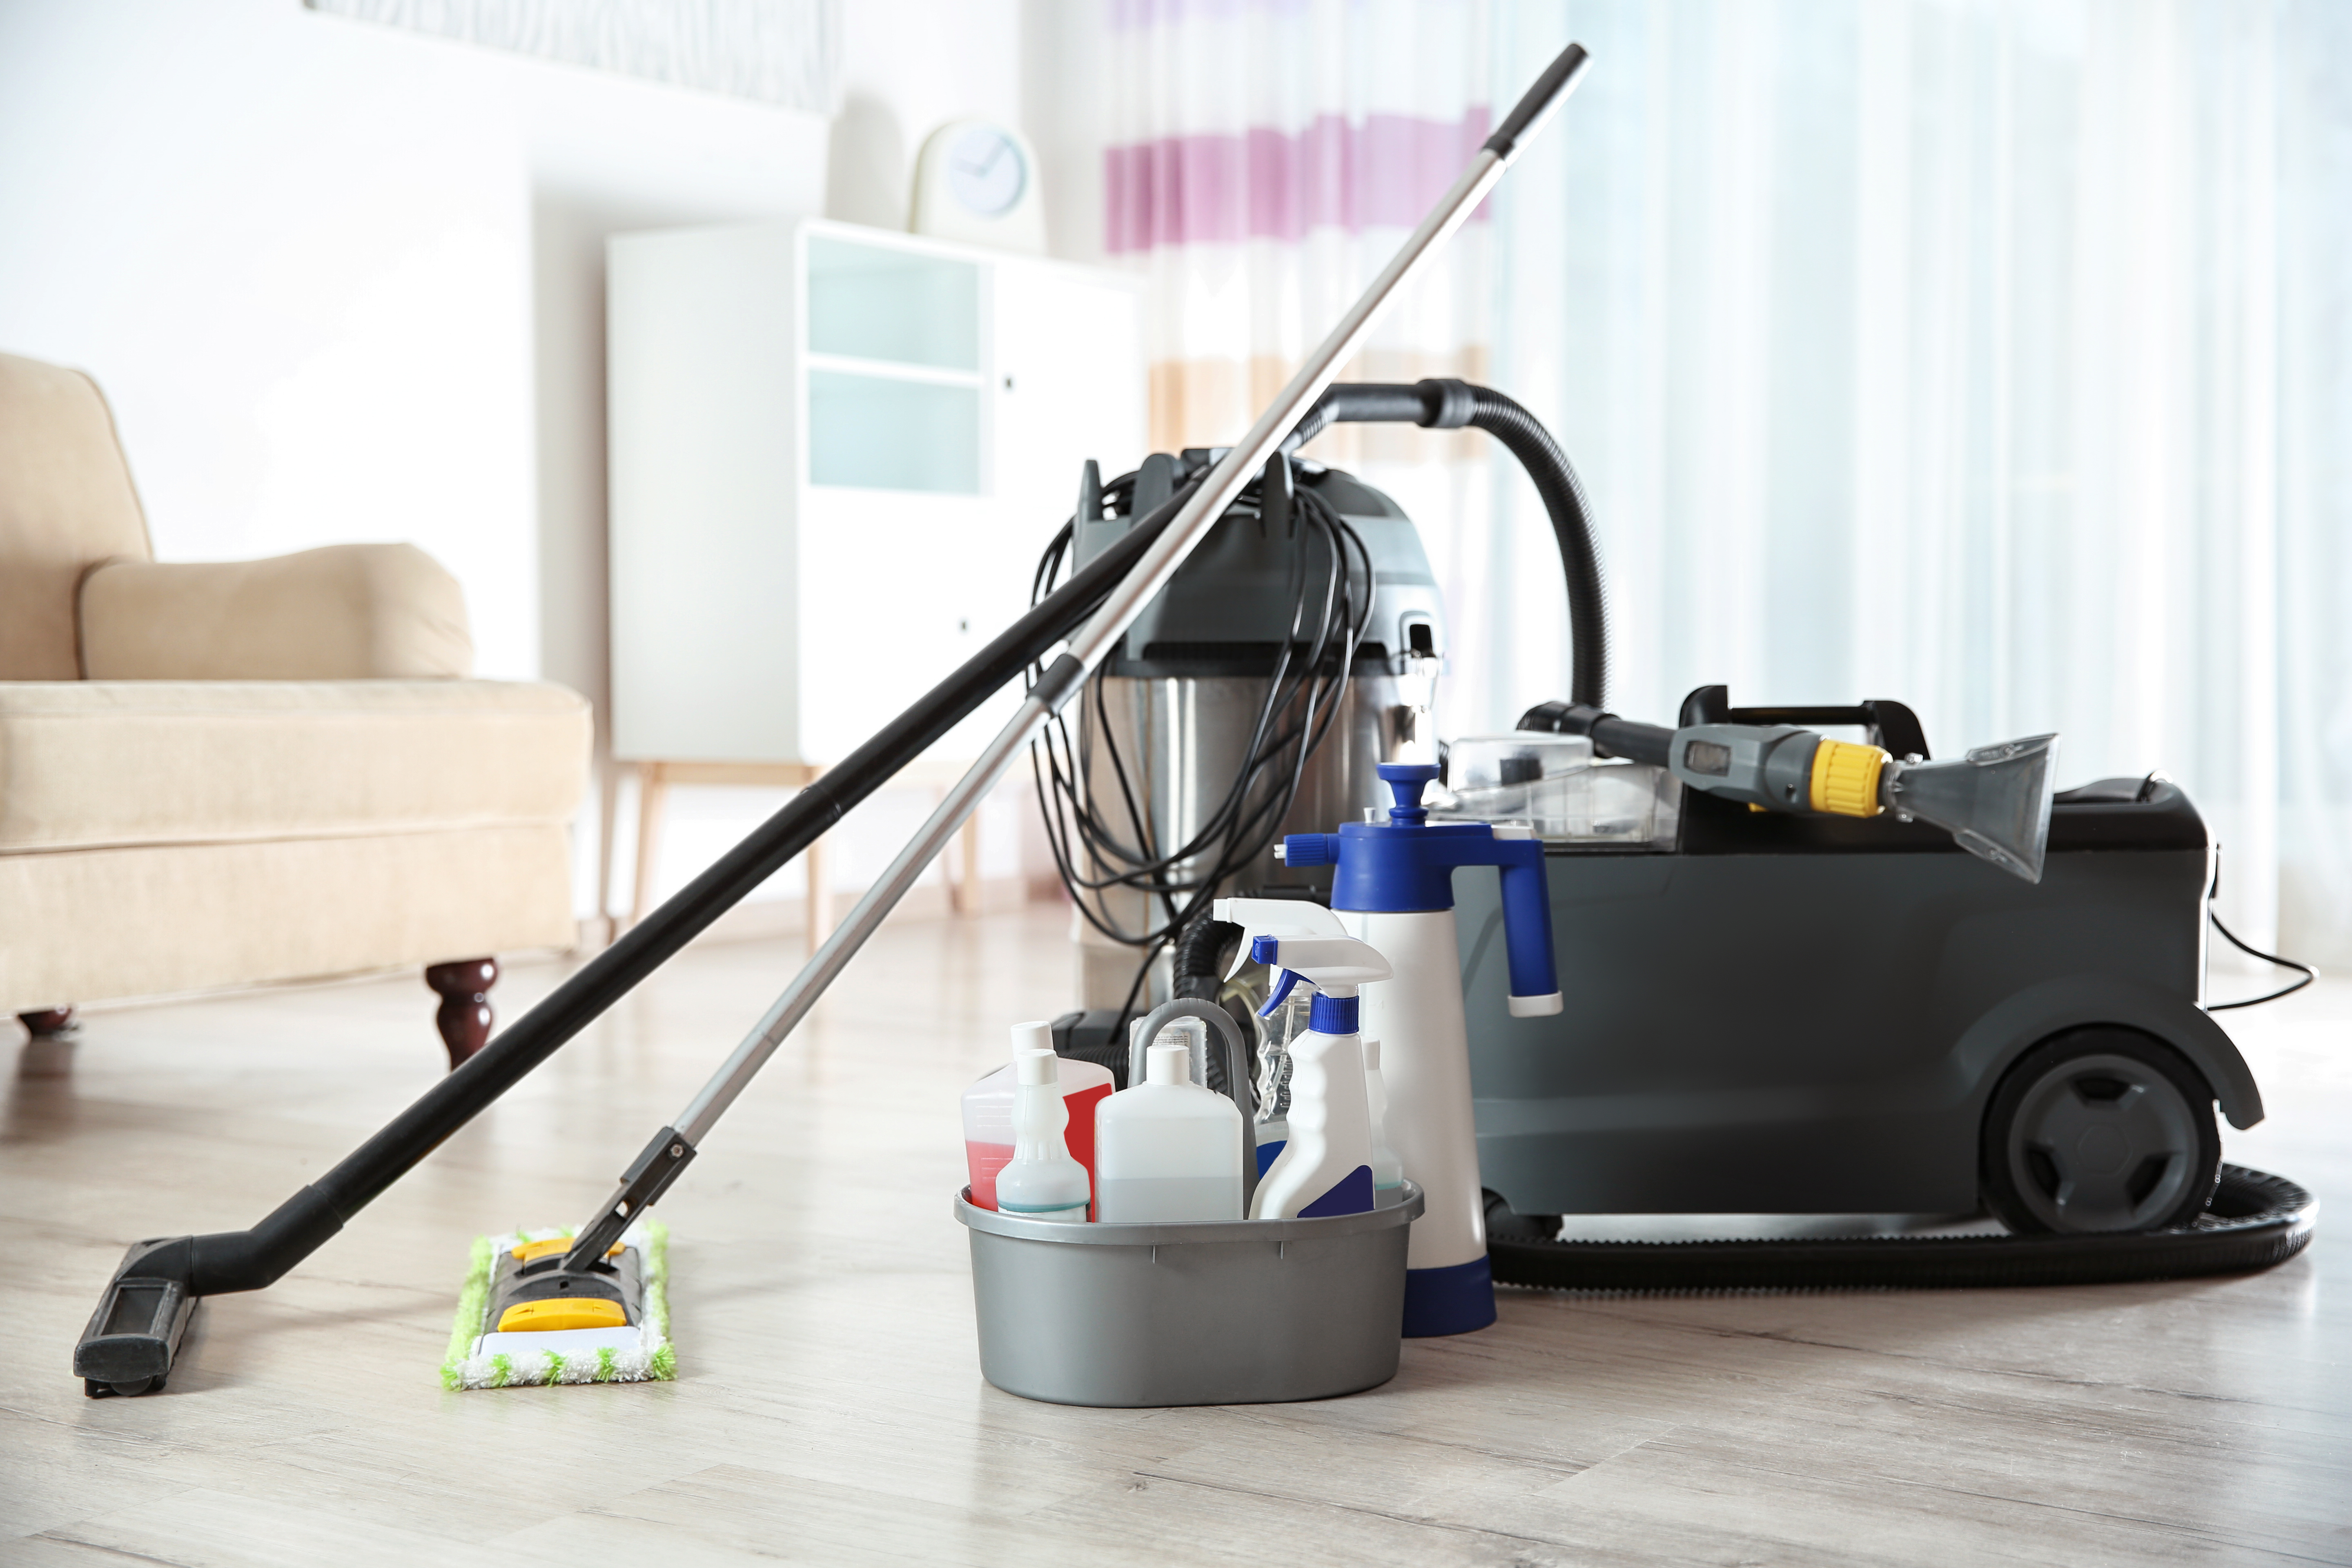 Professional cleaning supplies and equipment on floor indoors